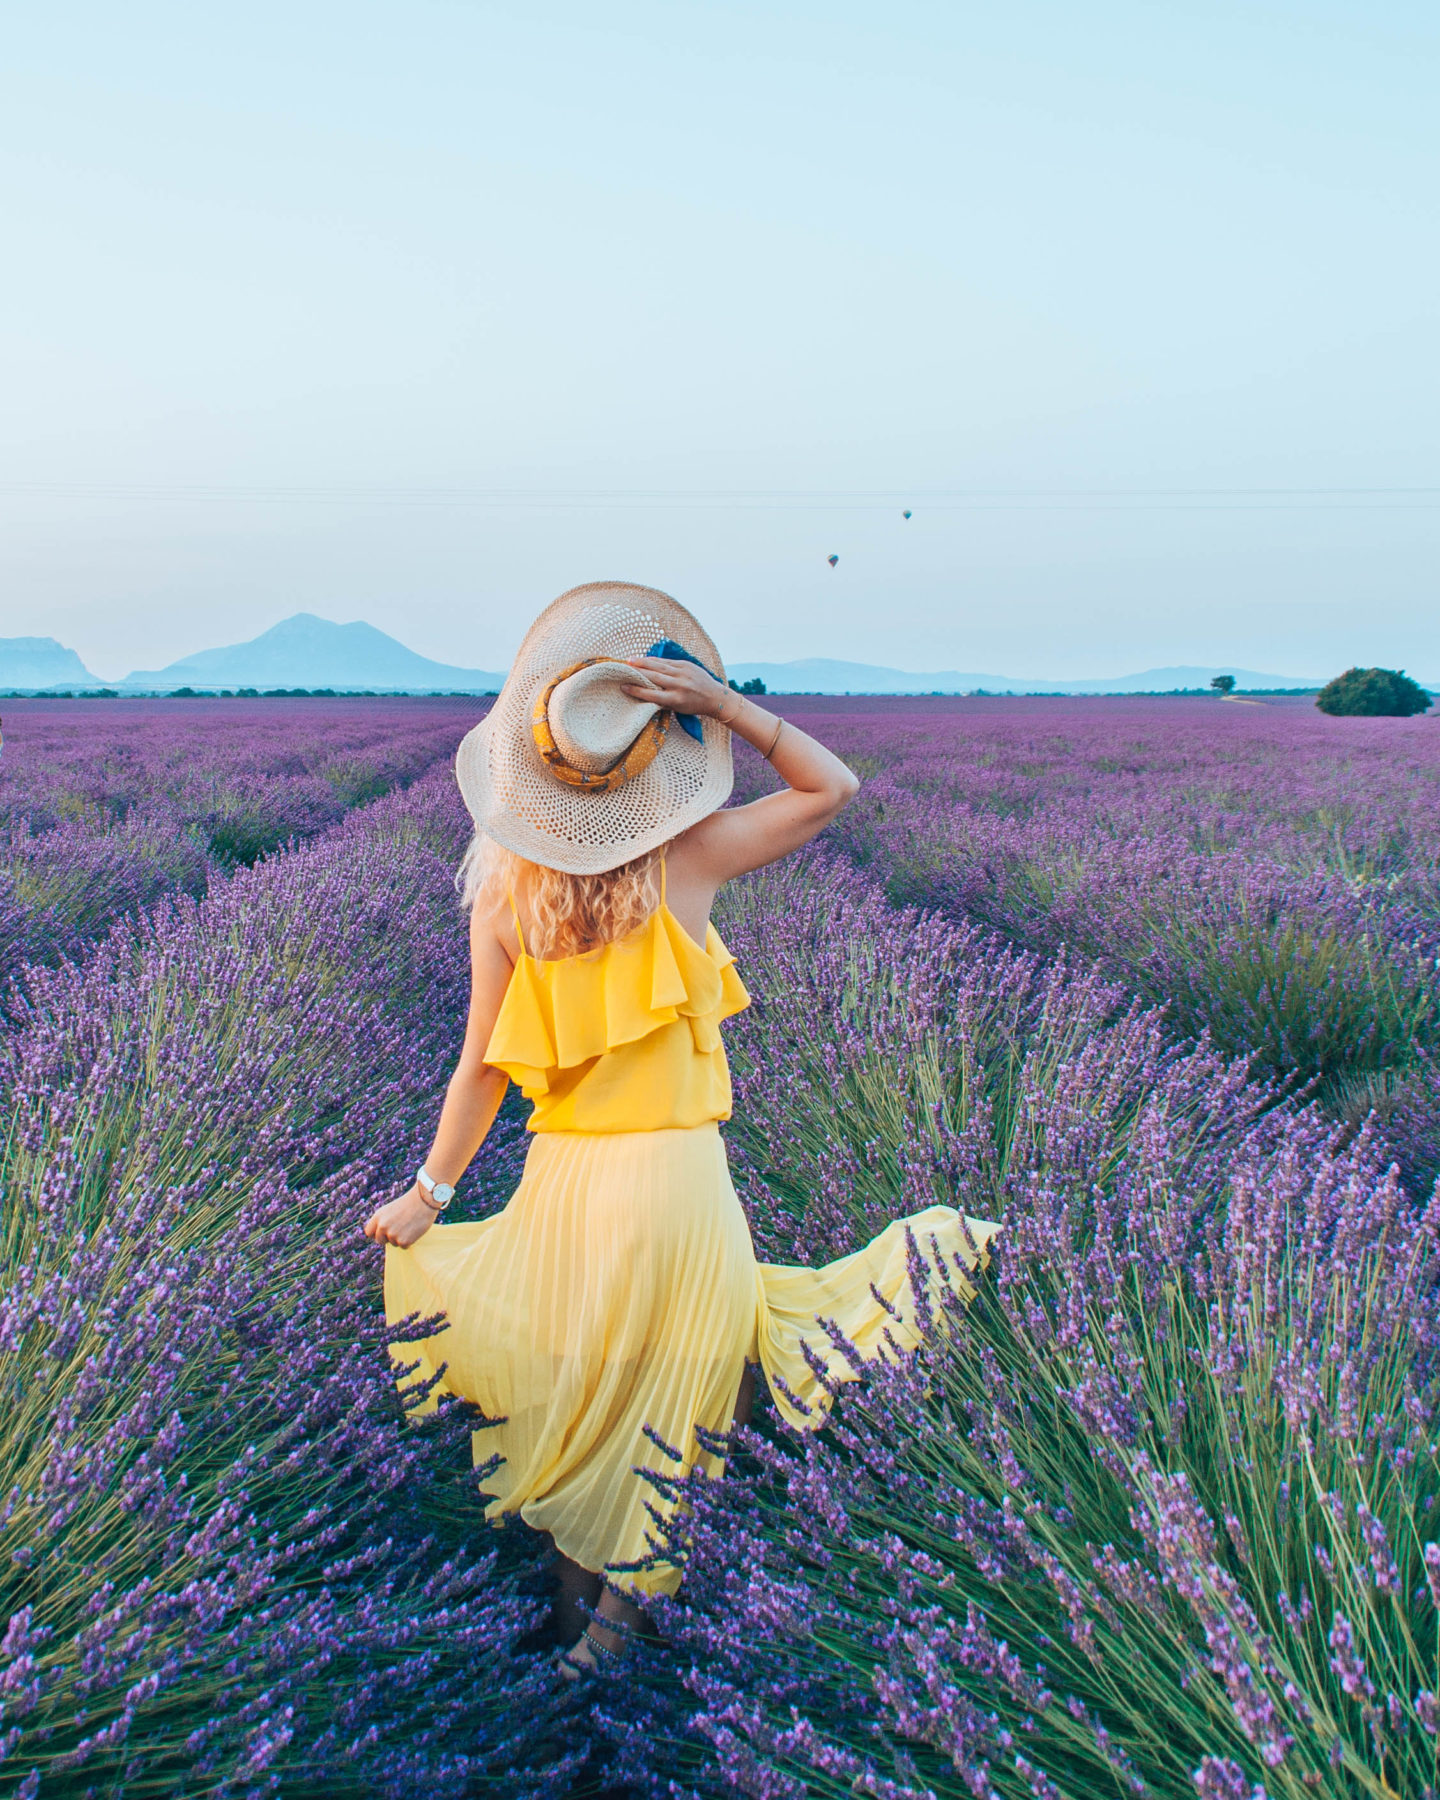 How To Find And Explore The Lavender Fields Of Provence Blondie Wanderlust